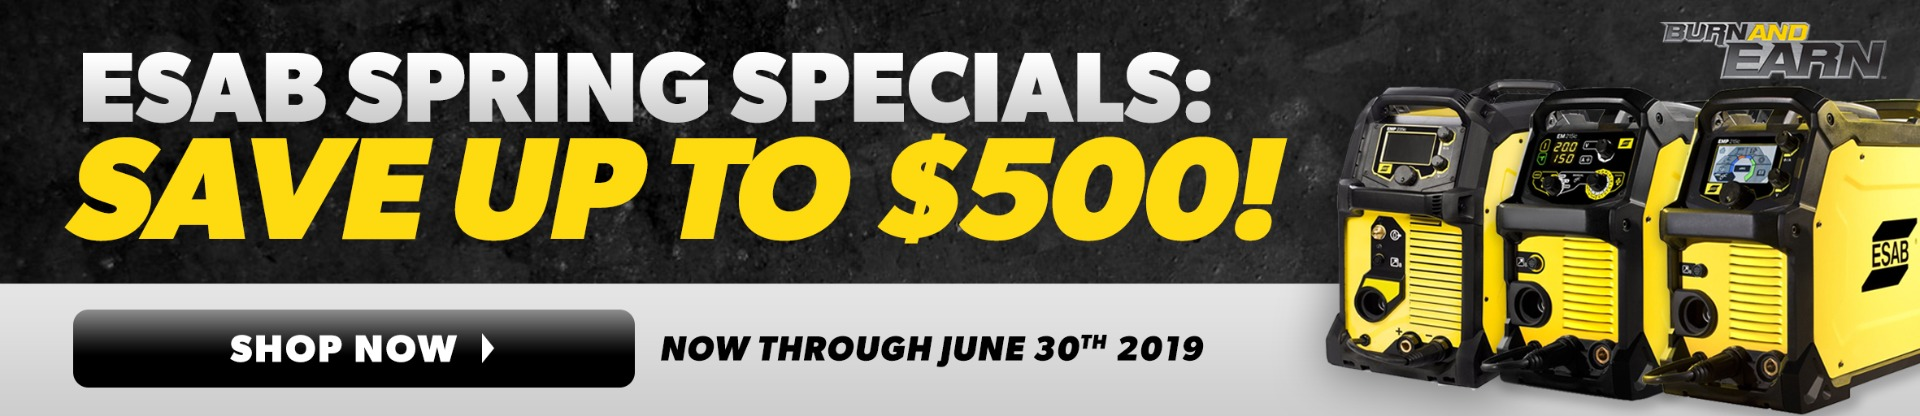 ESAB Spring Specials: Save up to $500! Shop Now. Offer ends March 31st. ESAB machine shown over dark woven fiber background with yellow stripes